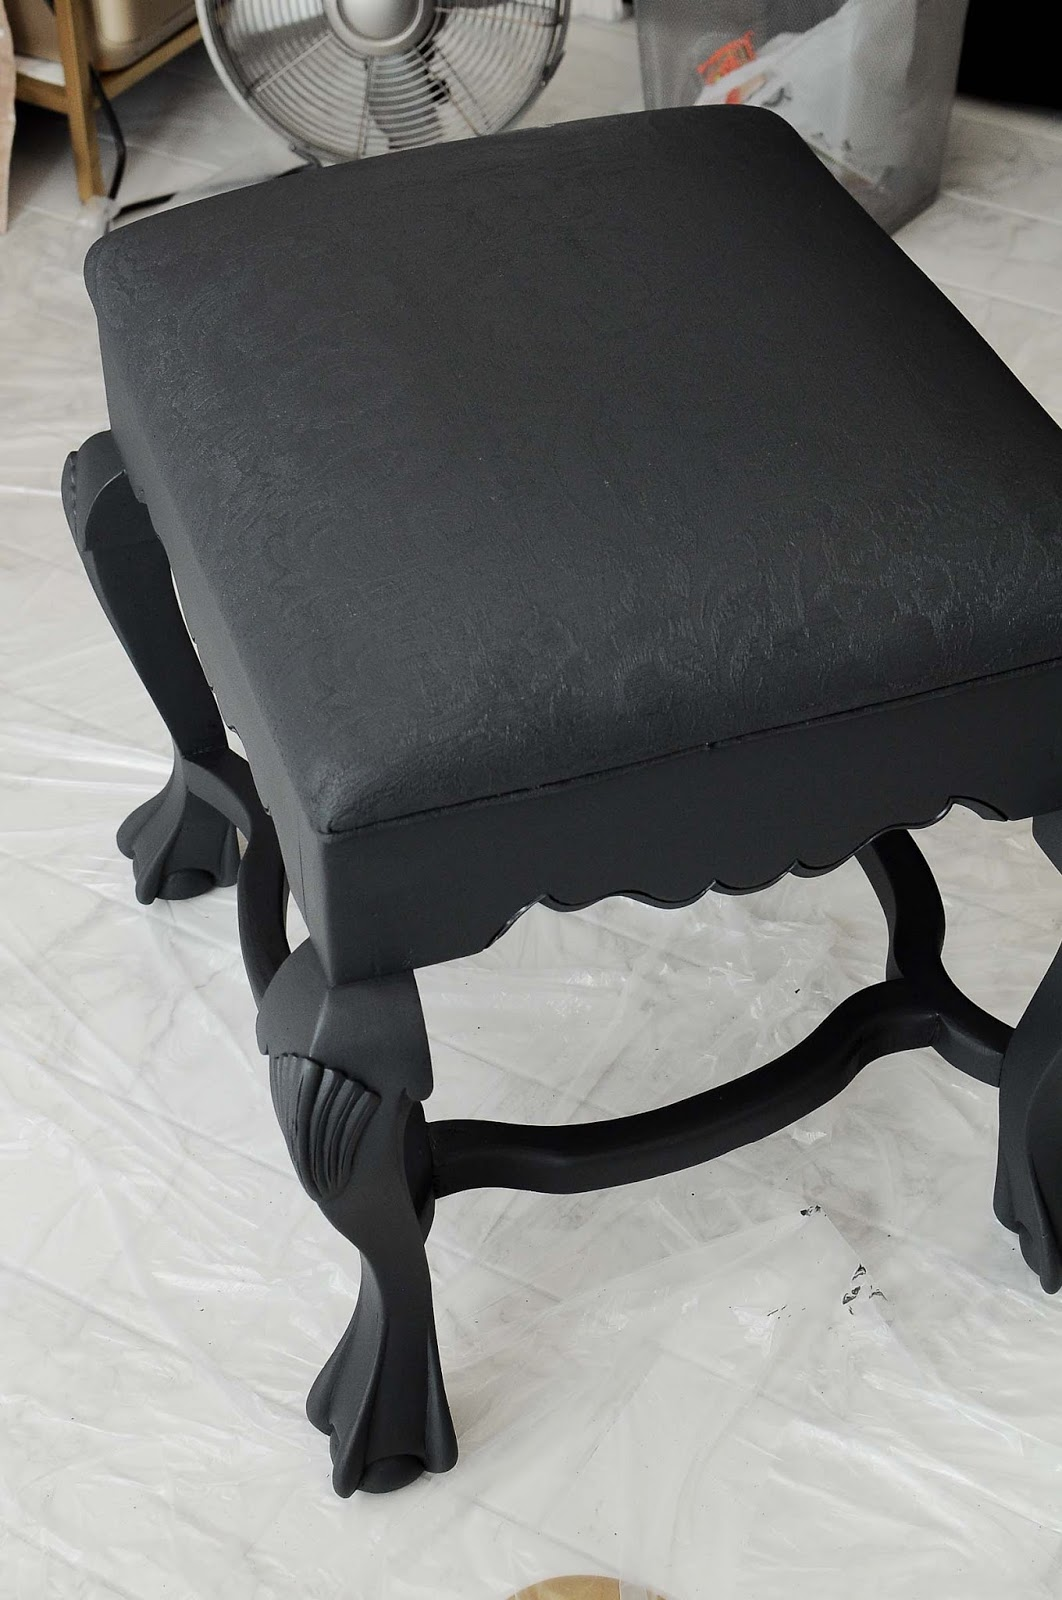 A vintage thrifted ottoman gets a DIY makeover using Velvet Finishes to paint the fabric and wood. What a fabulous idea!